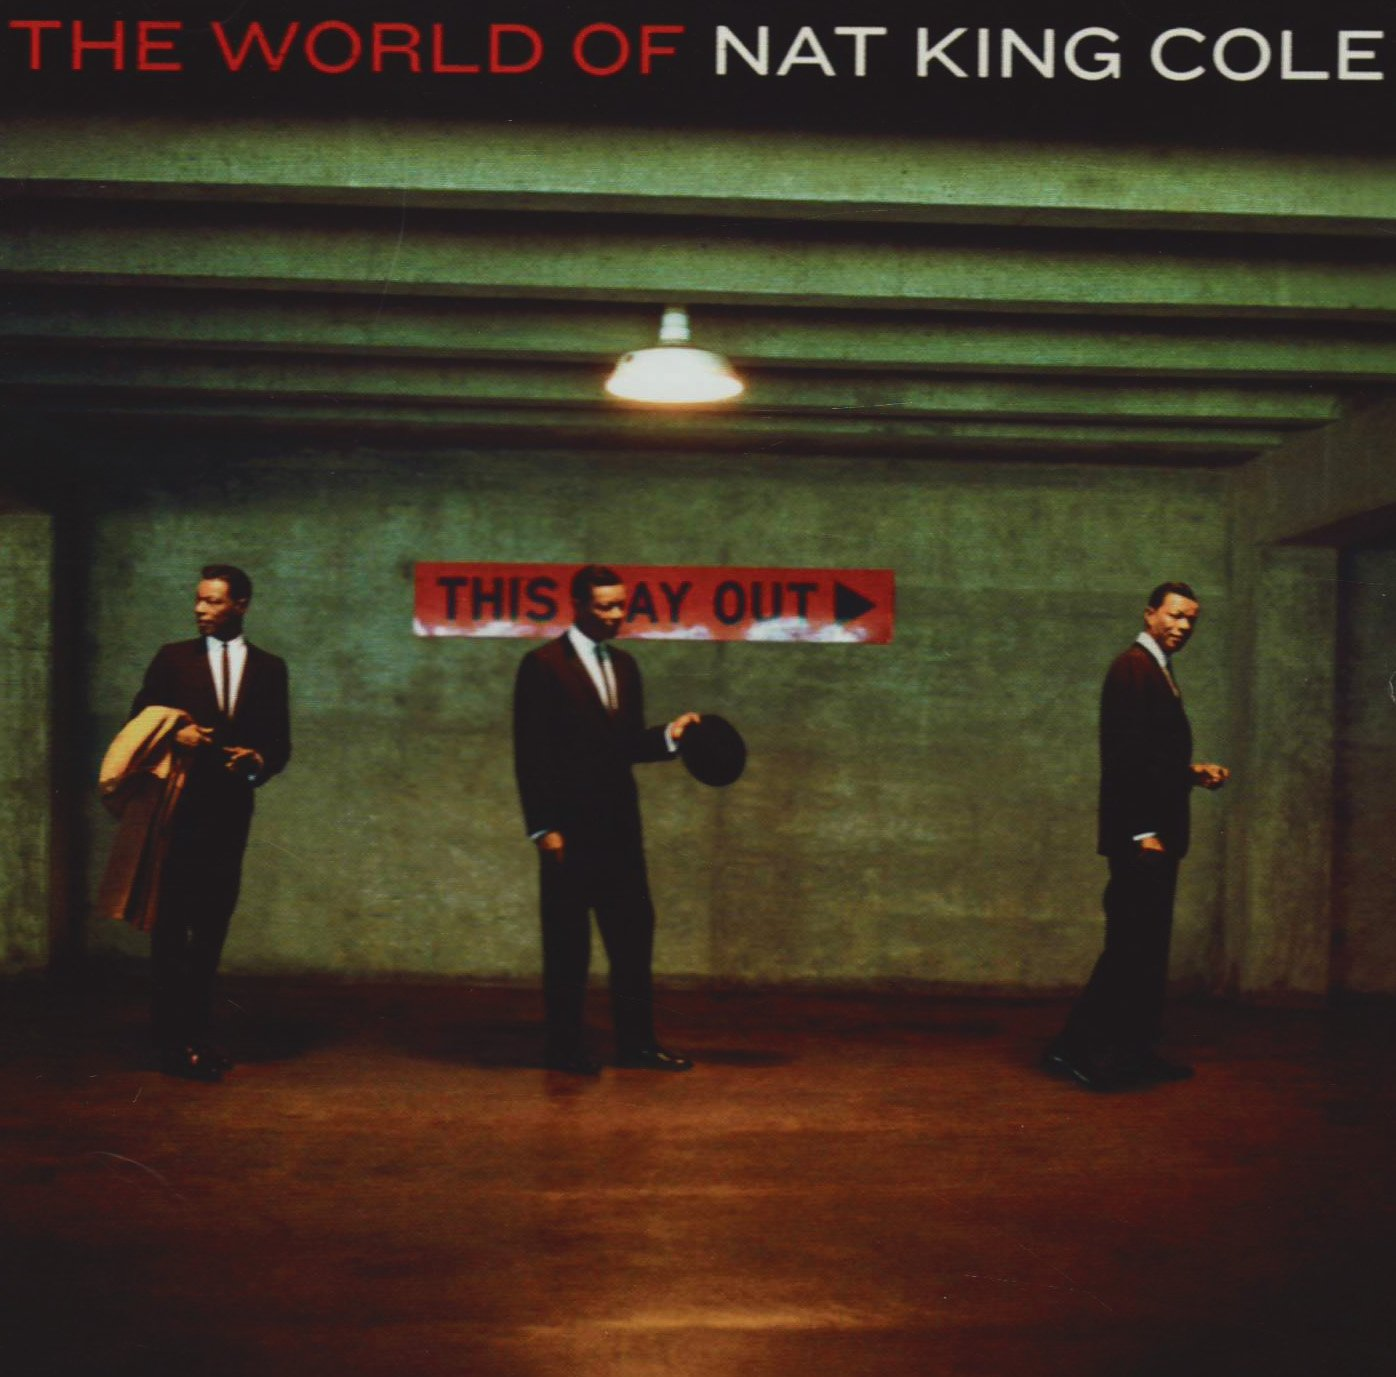 World Great interest of Nat King Special price Cole